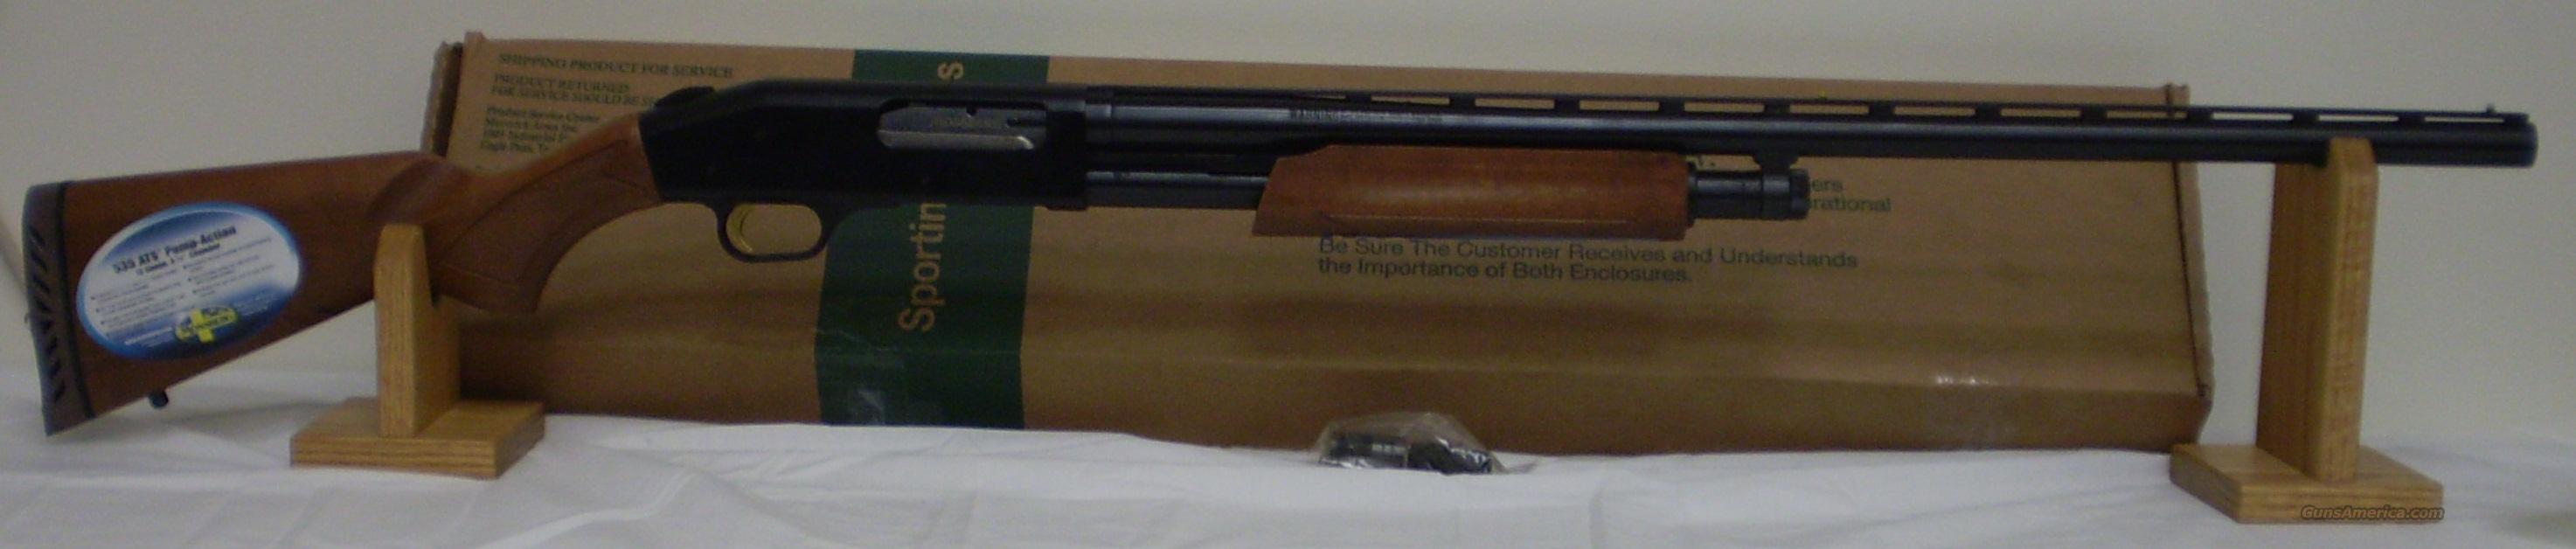 Mossberg Model 535 ATS 12ga Shotgun Unfired  Guns > Shotguns > Mossberg Shotguns > Pump > Sporting